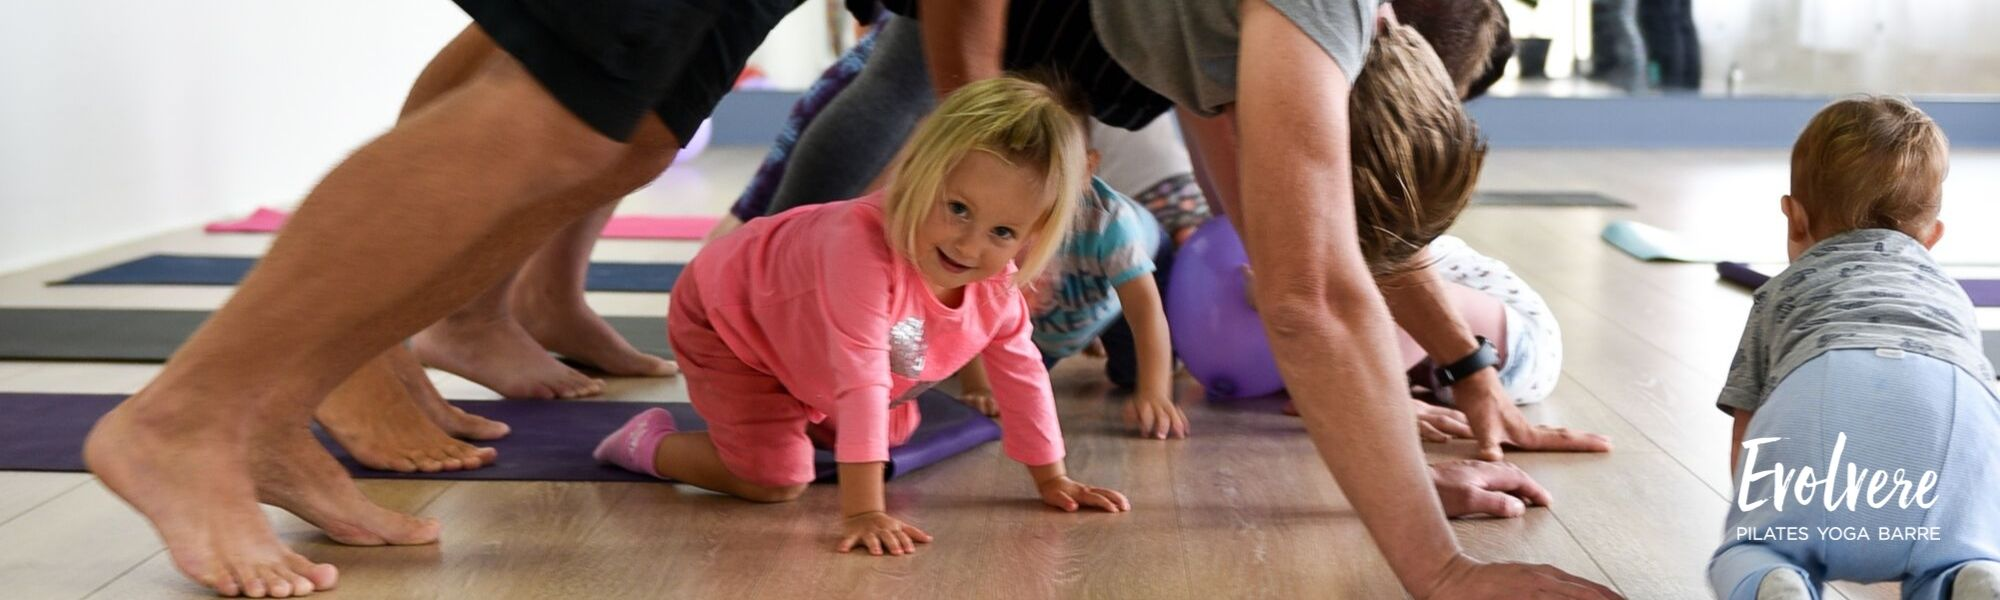 Yoga for the whole family toddlers walkers tweens and teens in Lane Cove at Evolvere